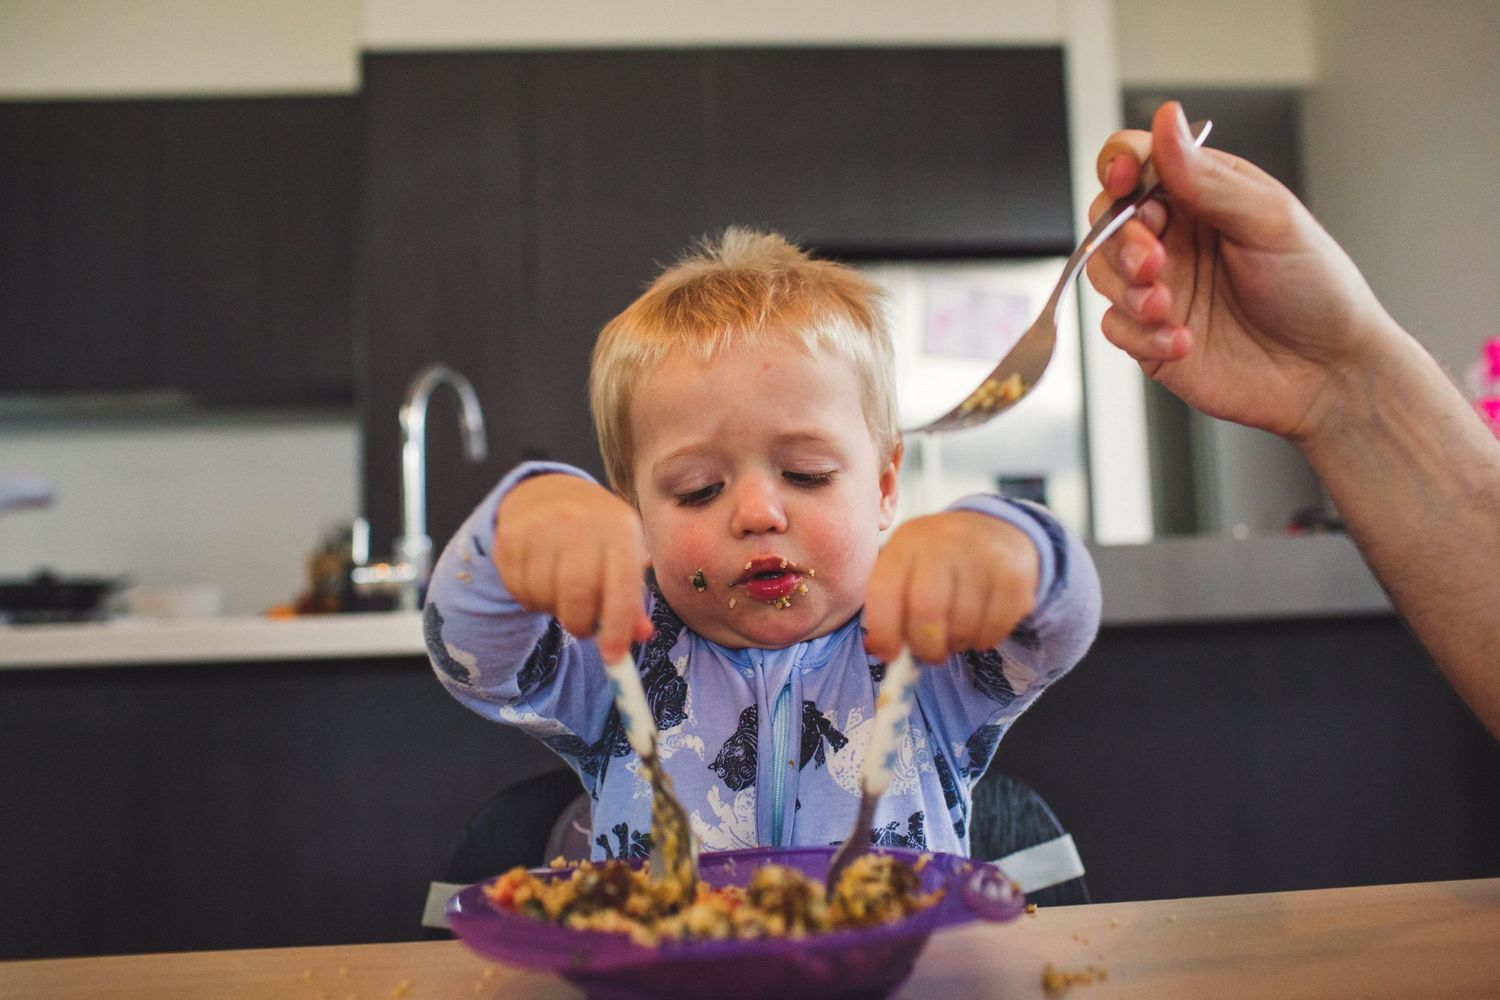 Toddler trying to eat his dinner